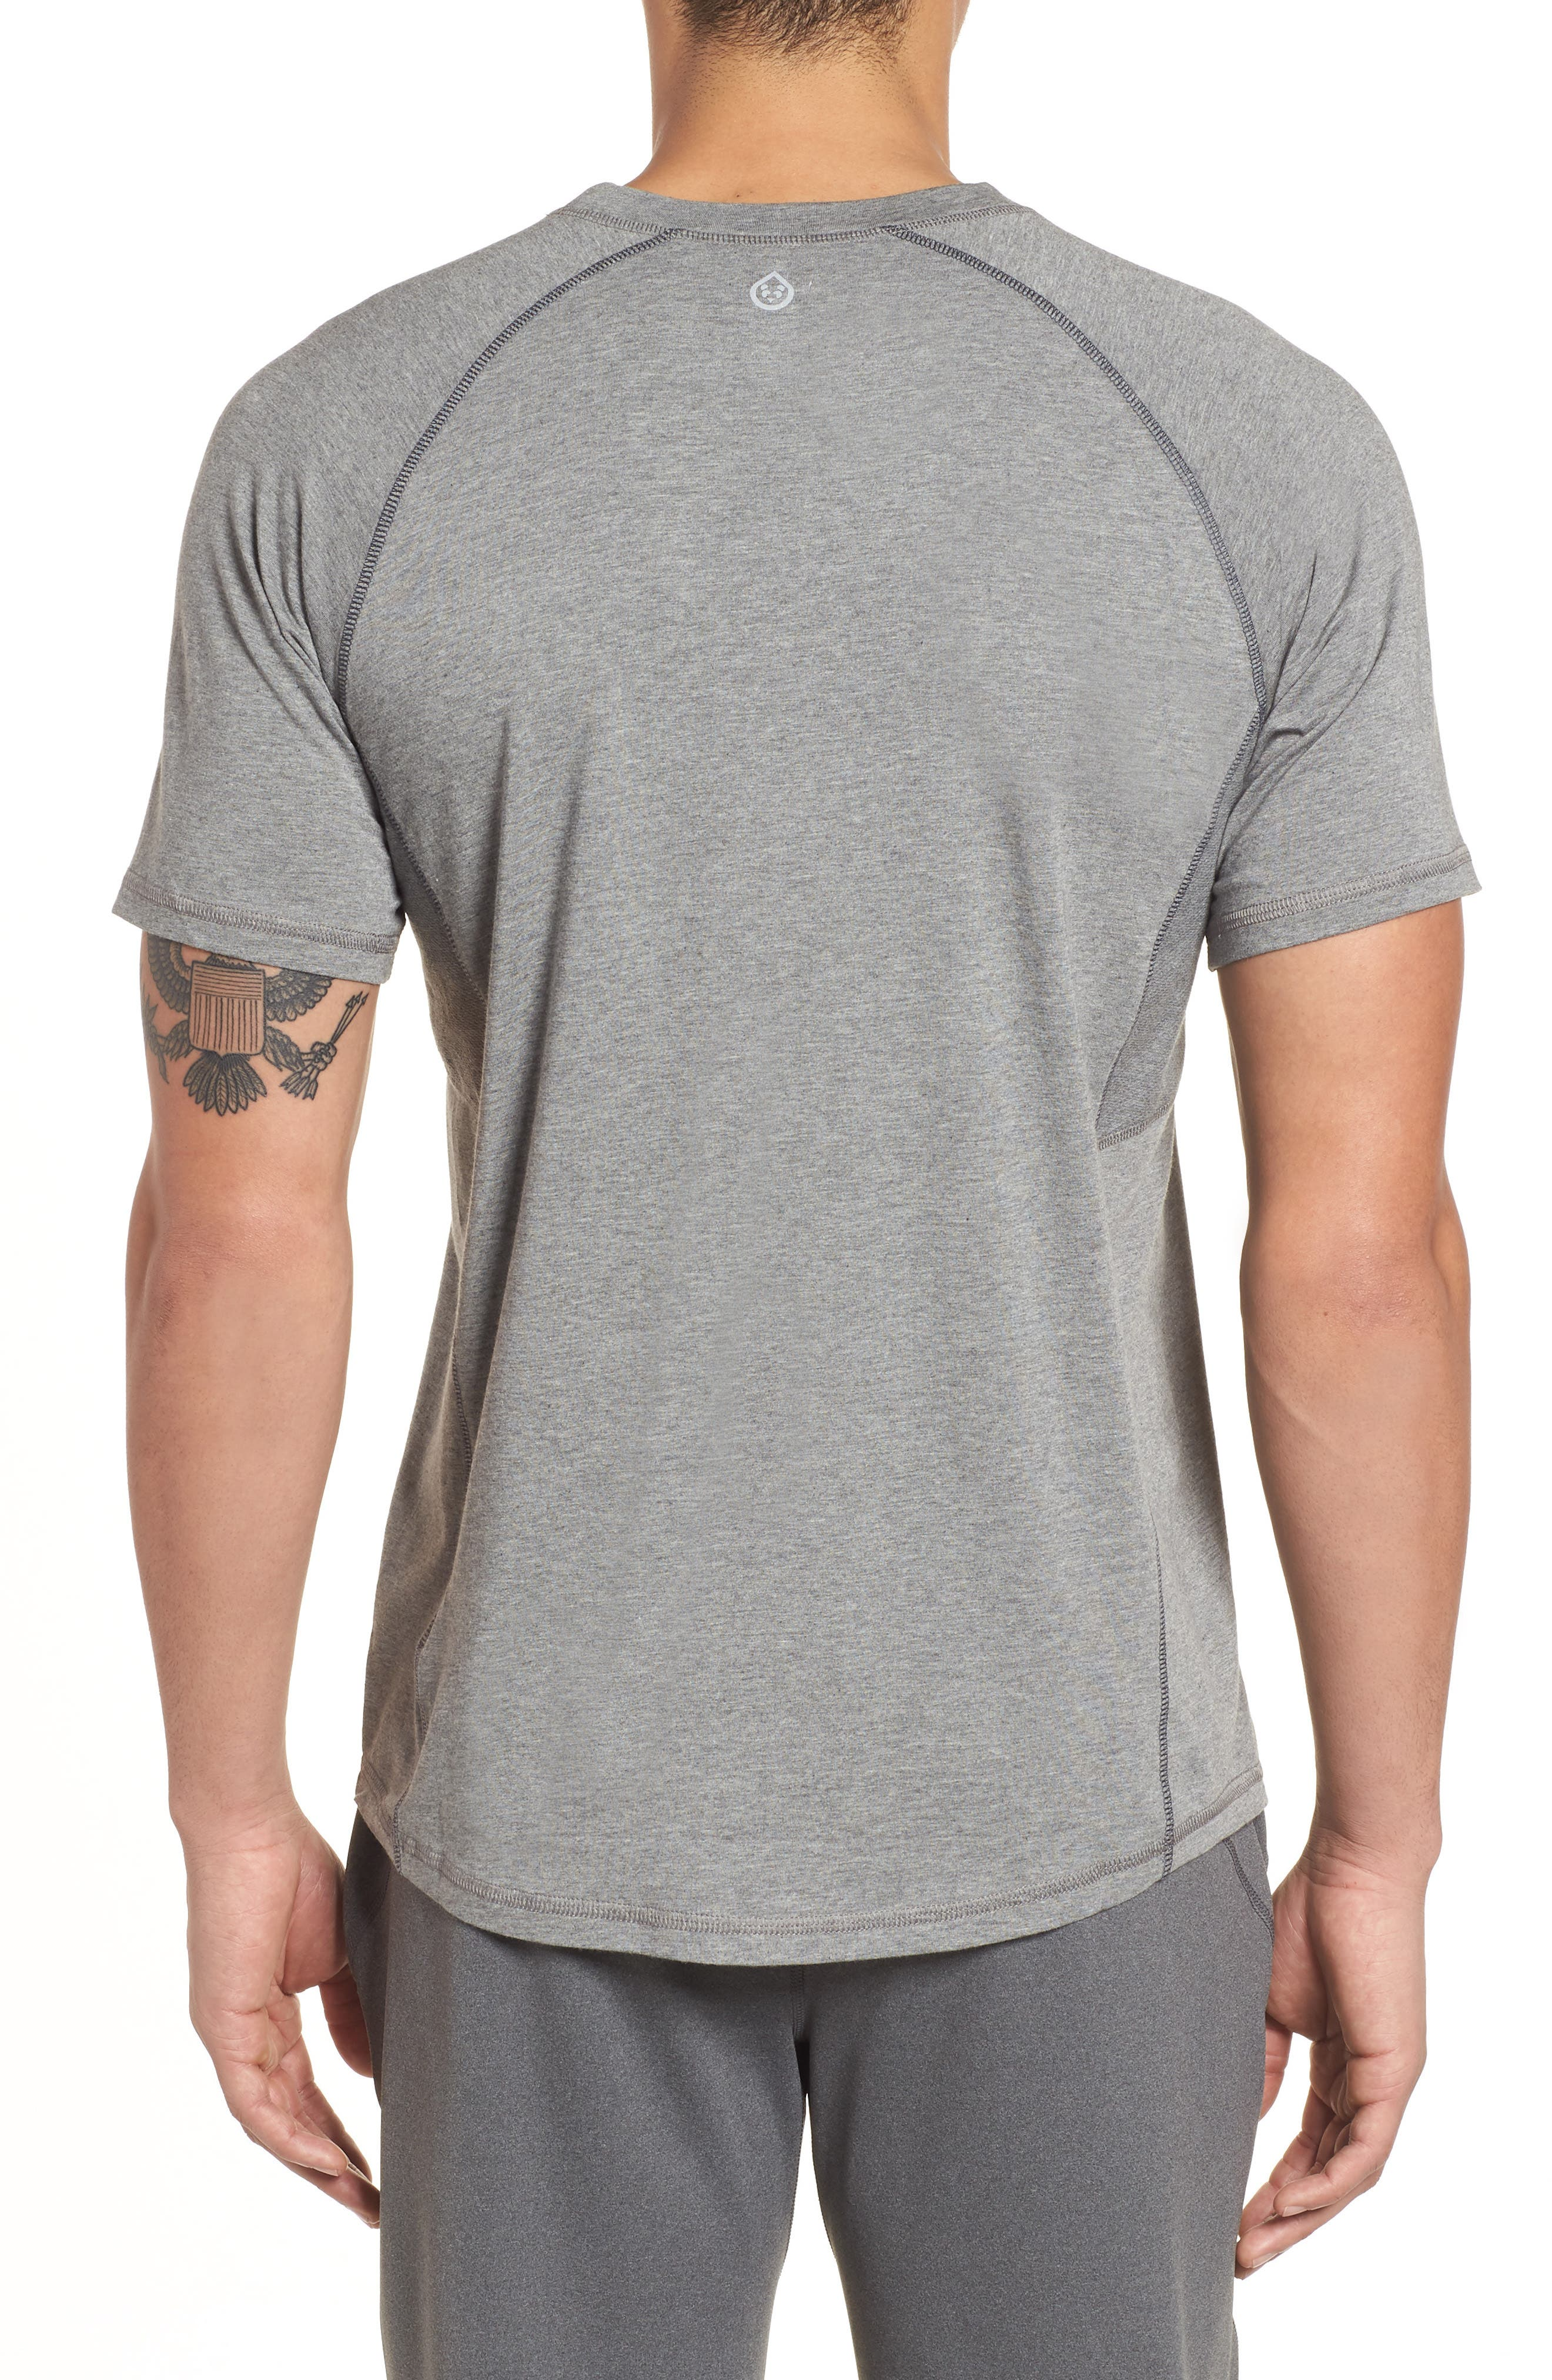 Charge II T-Shirt,                             Alternate thumbnail 2, color,                             HEATHER GREY